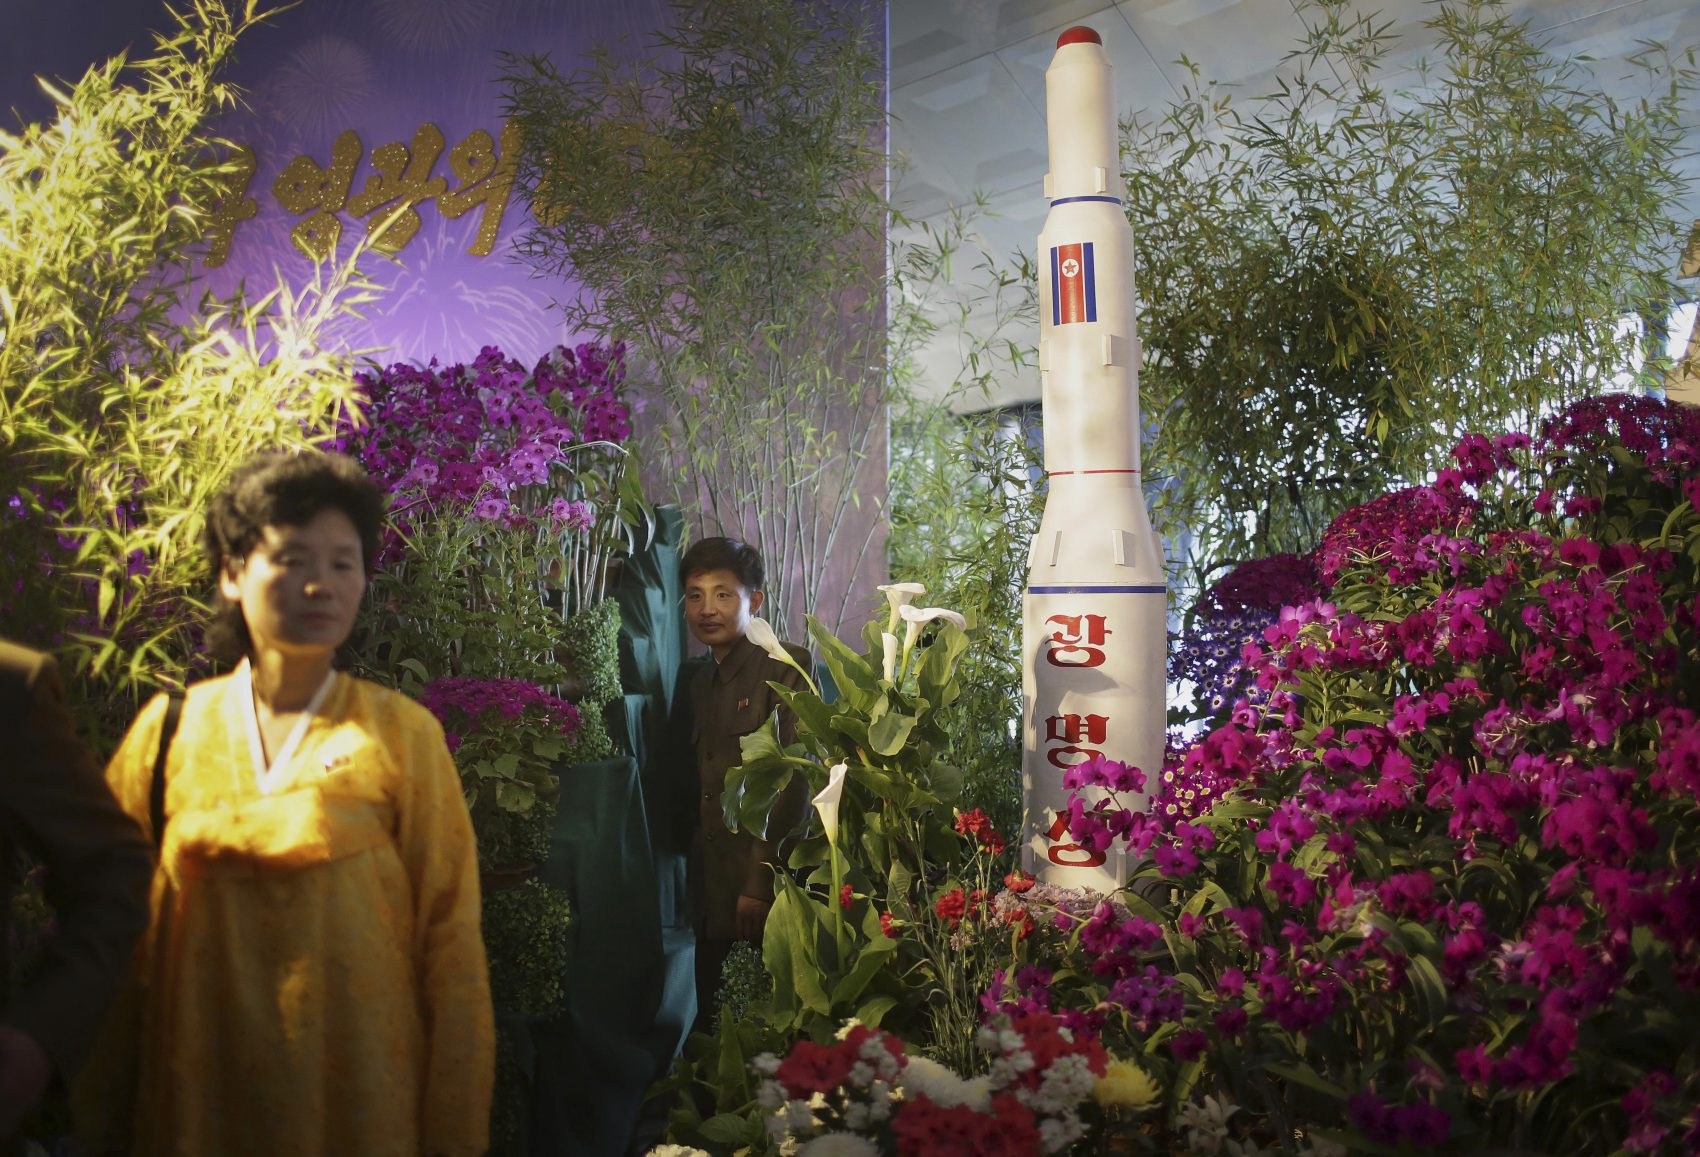 North Koreans walk past a model of a rocket at a flower festival as part of celebrations to mark the 105th birth anniversary of late leader Kim Il Sung on Sunday, April 16, 2017, in Pyongyang, North Korea. A North Korean missile exploded during launch Sunday, U.S. and South Korean officials said, a high-profile failure that comes as a powerful U.S. aircraft supercarrier approaches the Korean Peninsula in a show of force. (Wong Maye-E/AP)